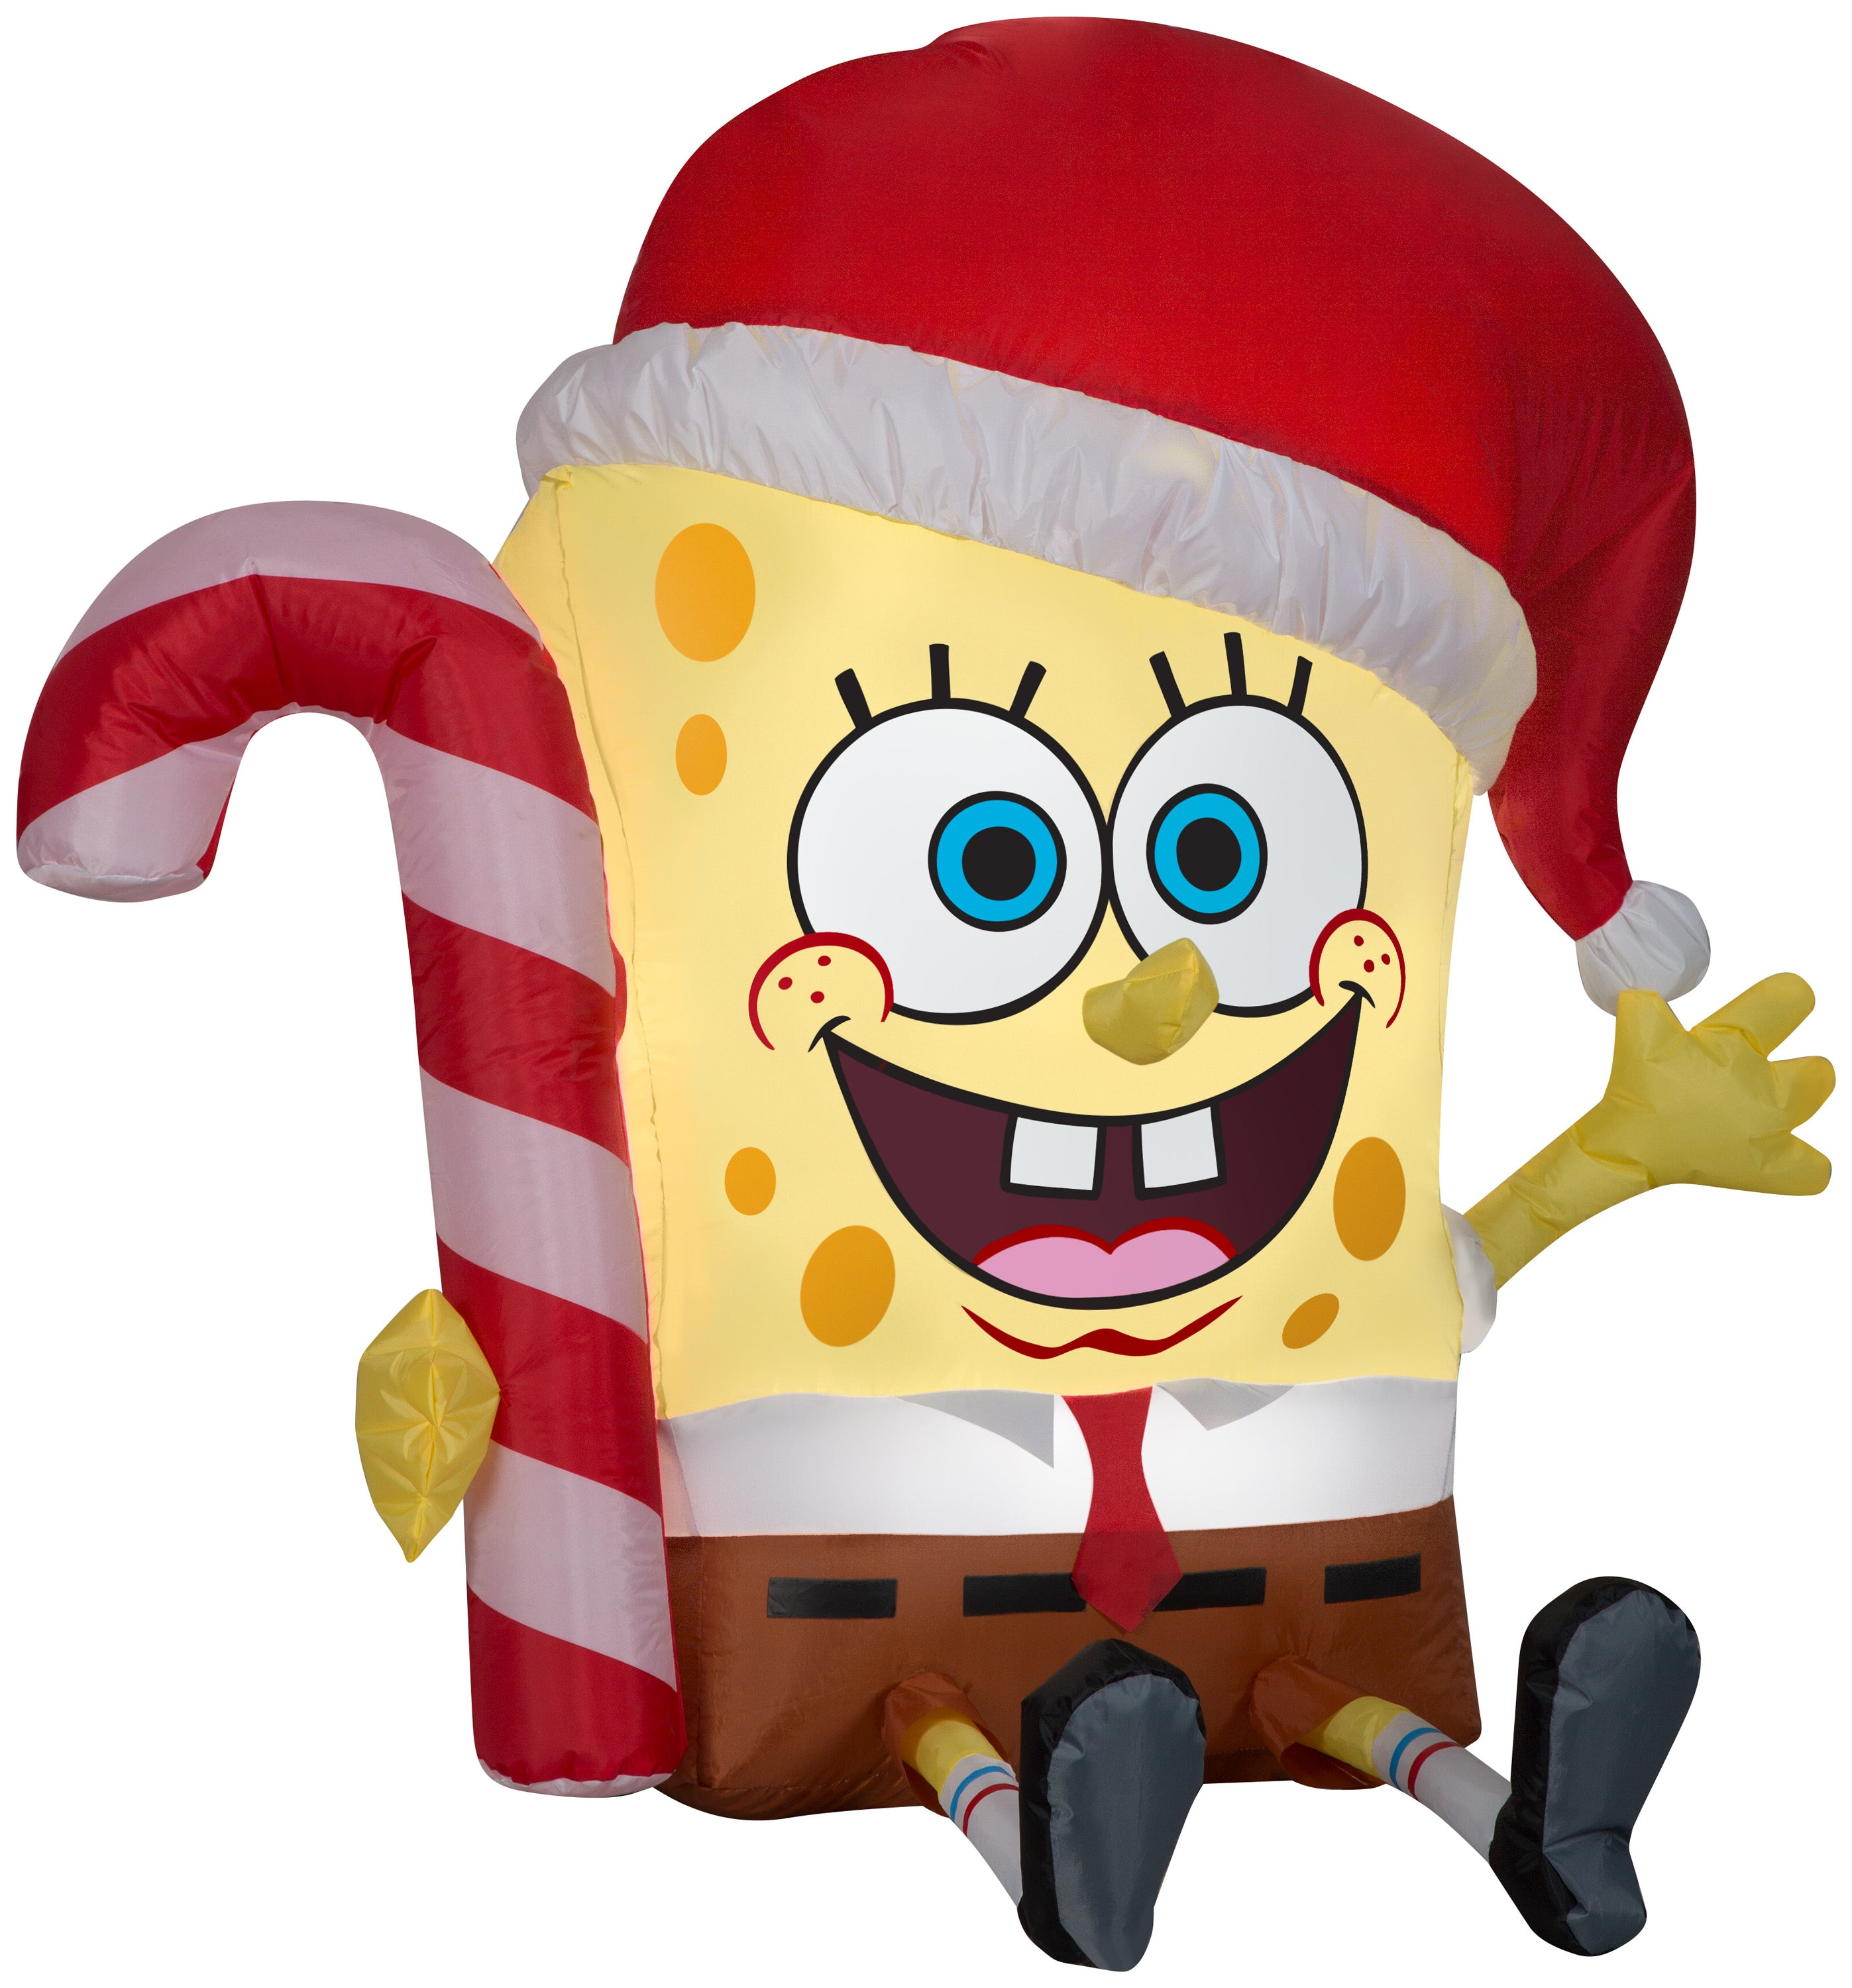 Gemmy Christmas Airblown Inflatable SpongeBob w/Candy Cane Nickelodeon, 3 ft Tall, yellow